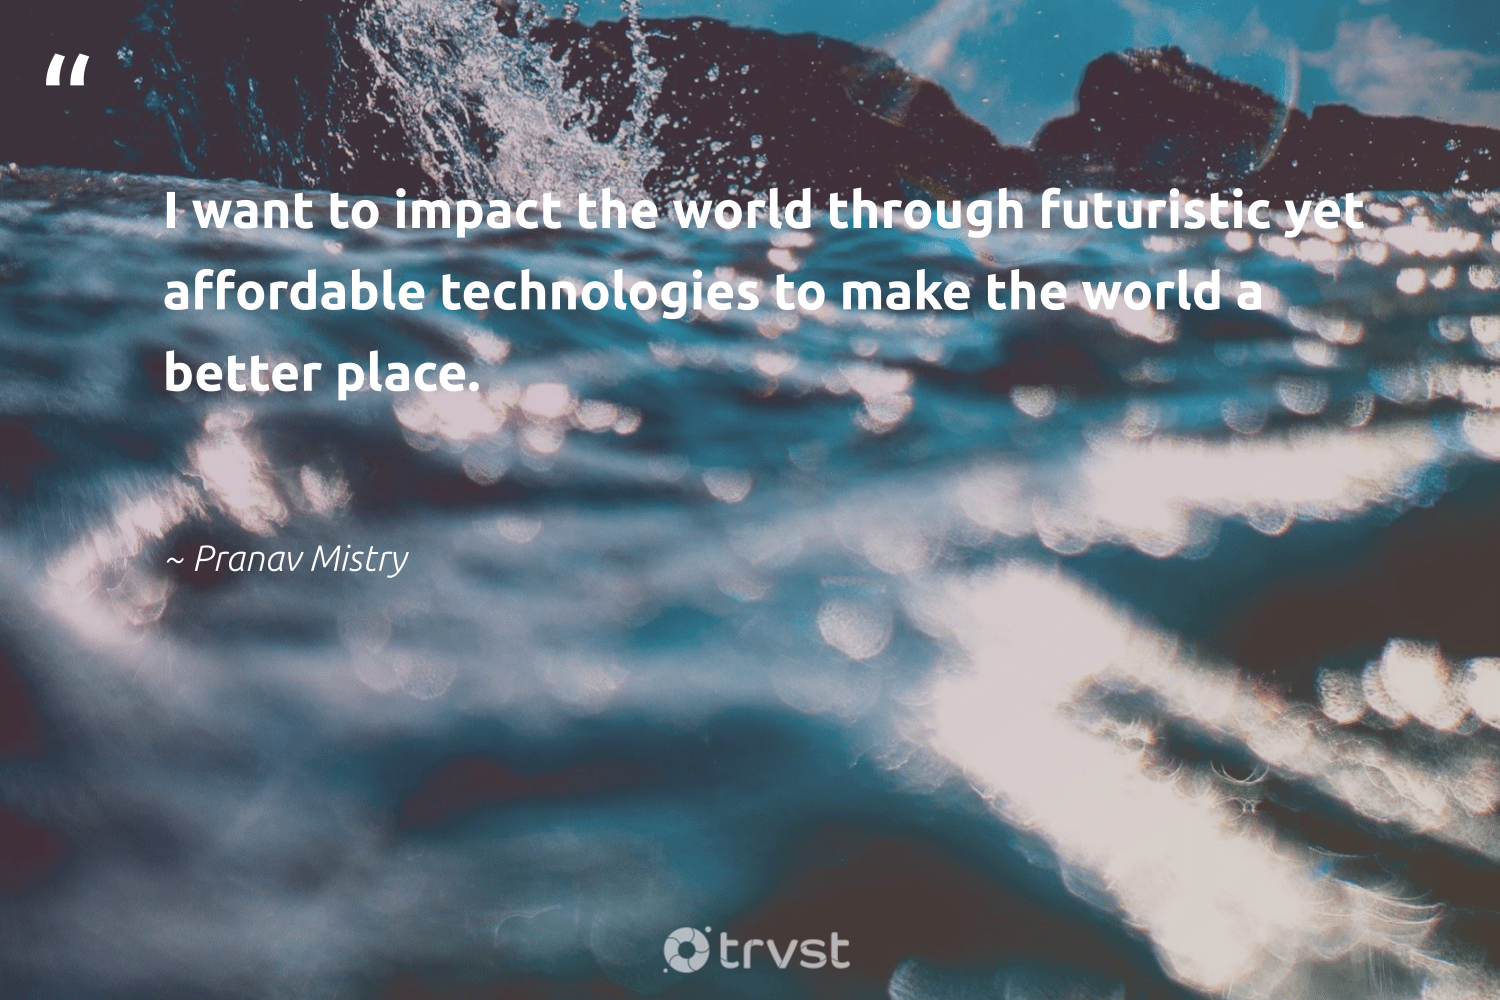 """""""I want to impact the world through futuristic yet affordable technologies to make the world a better place.""""  - Pranav Mistry #trvst #quotes #impact #affordable #greenenergy #ethicalbusiness #livegreen #planetearthfirst #renewableenergy #weareallone #zerocarbon #takeaction"""